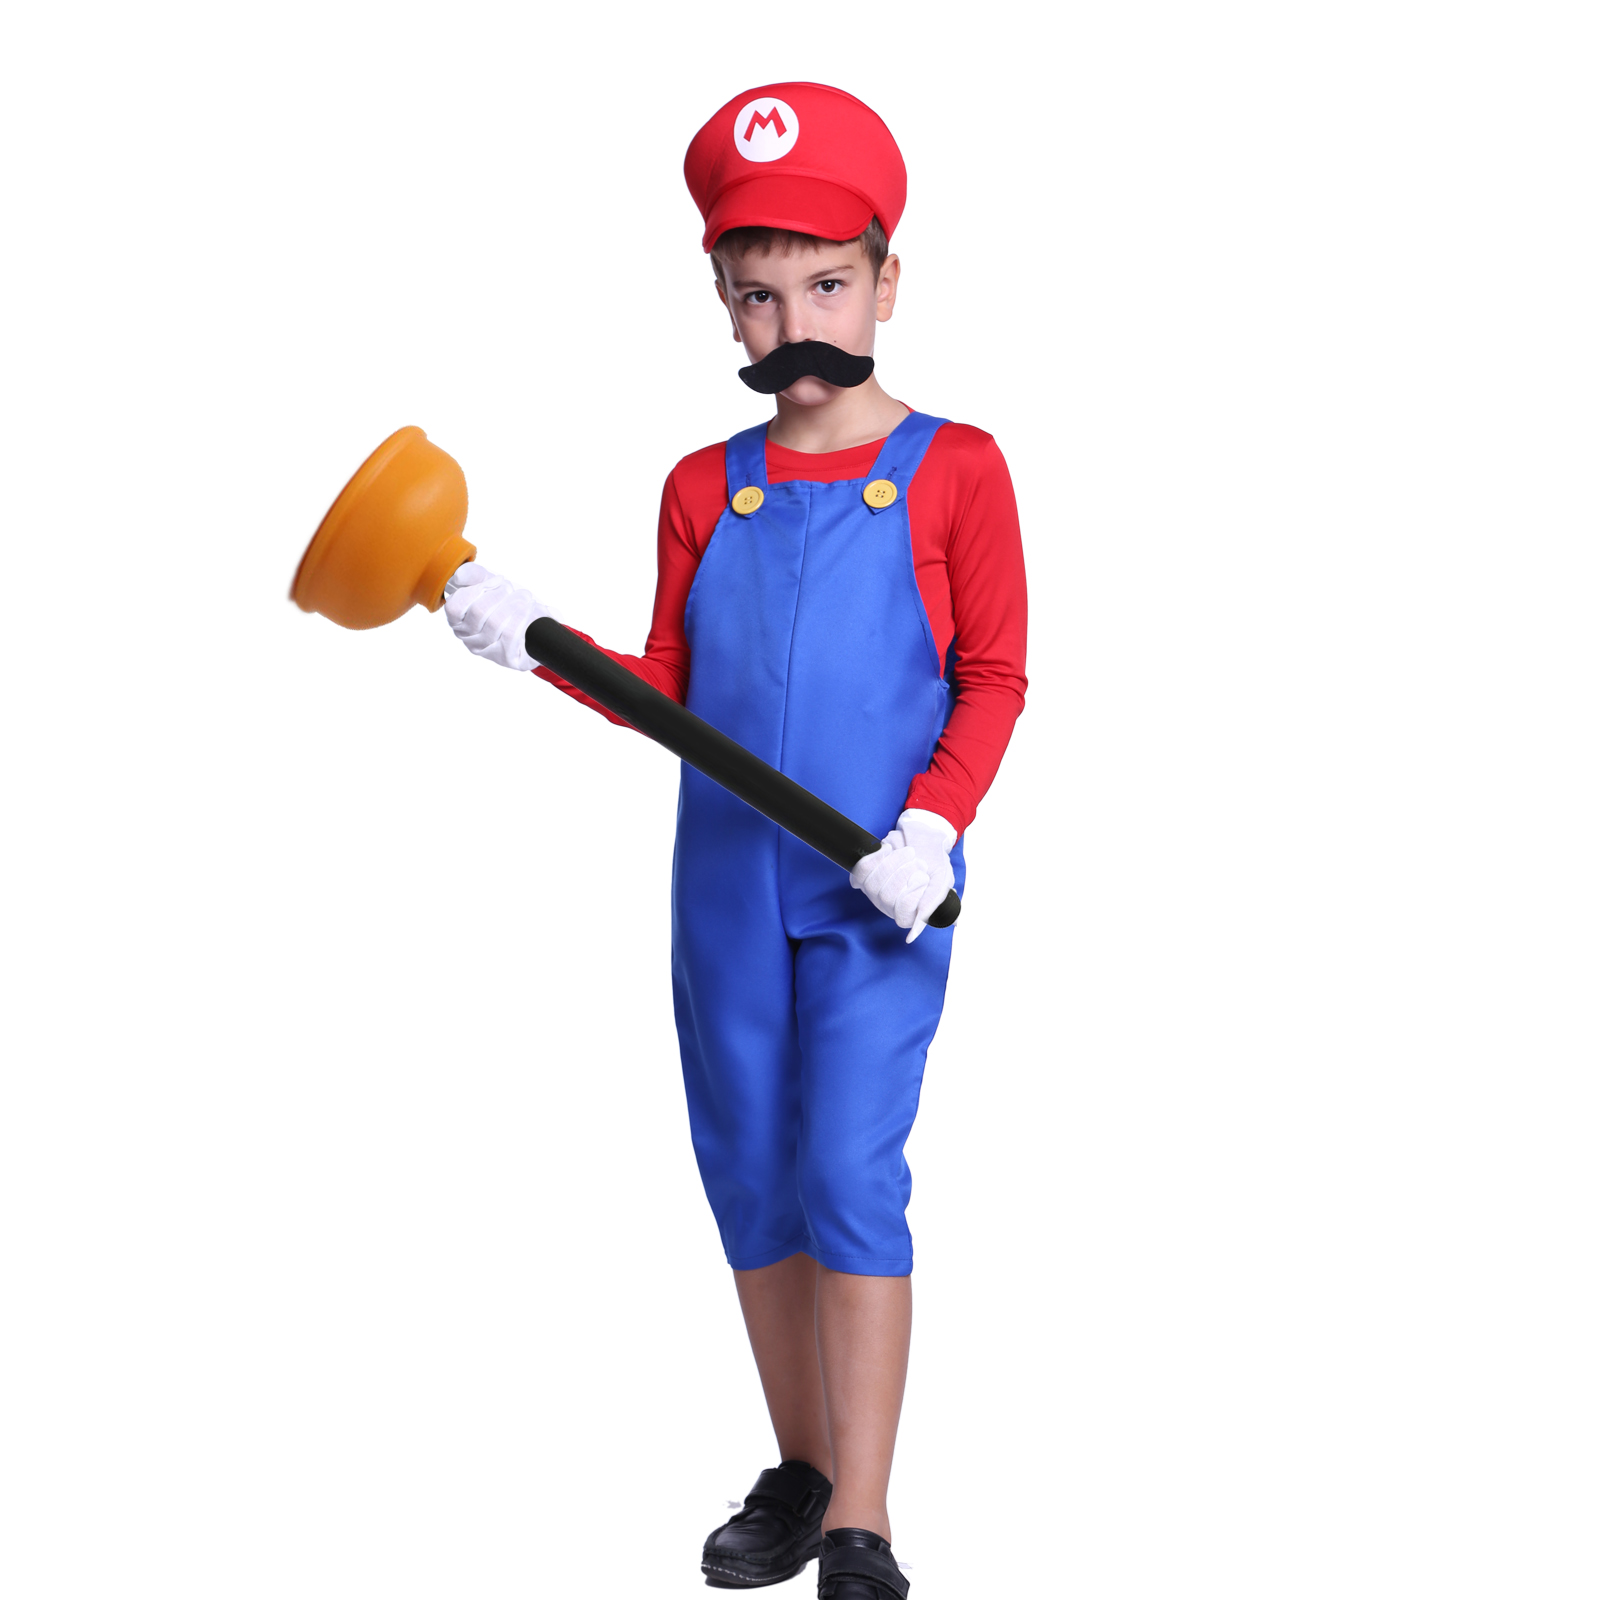 costume deguisement super mario luigi garcons hommes jeux video fete rouge vert ebay. Black Bedroom Furniture Sets. Home Design Ideas